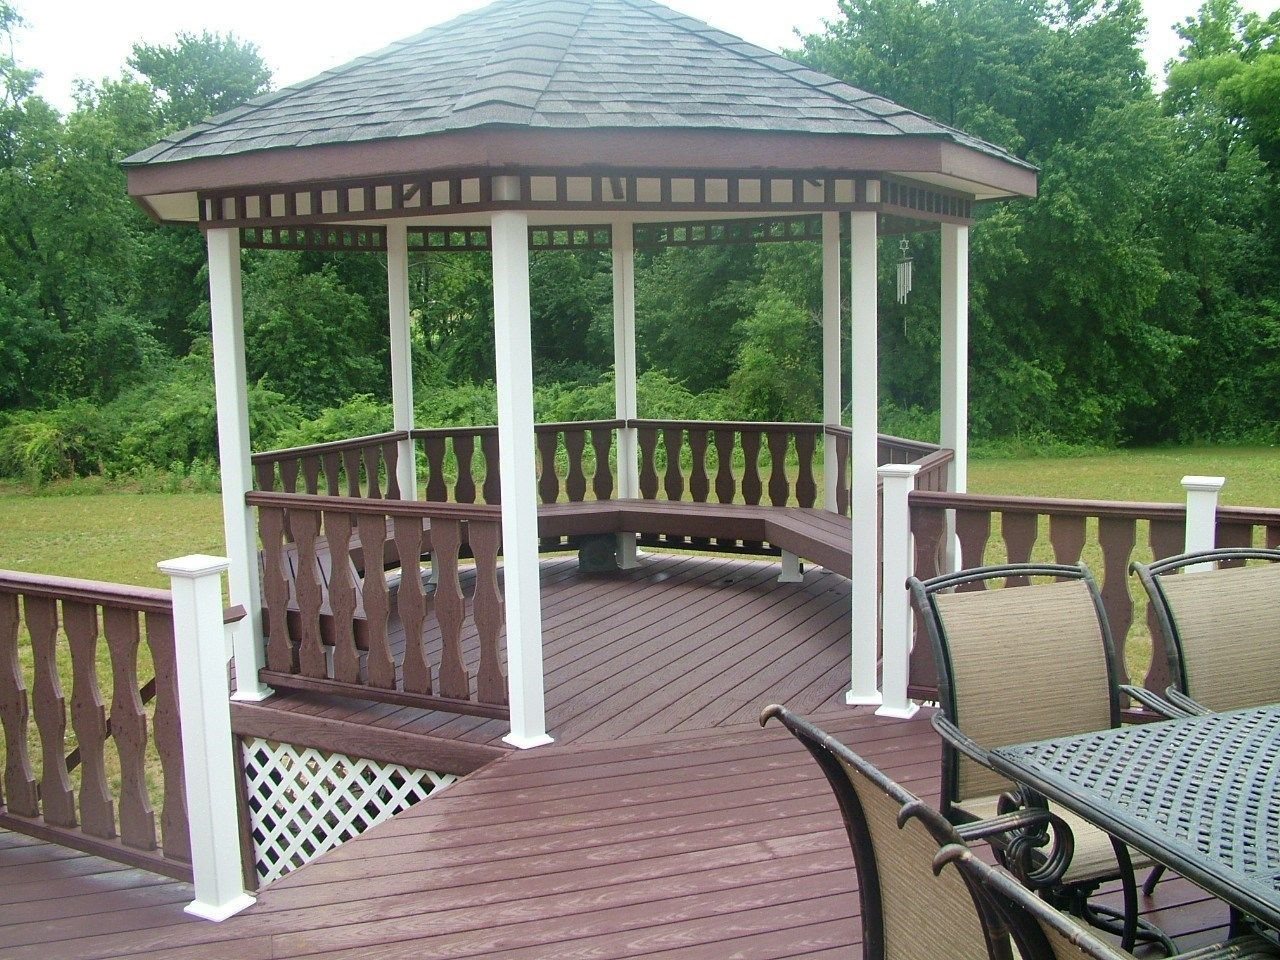 Custom Gazebo deck in Millstone NJ - Picture 3424